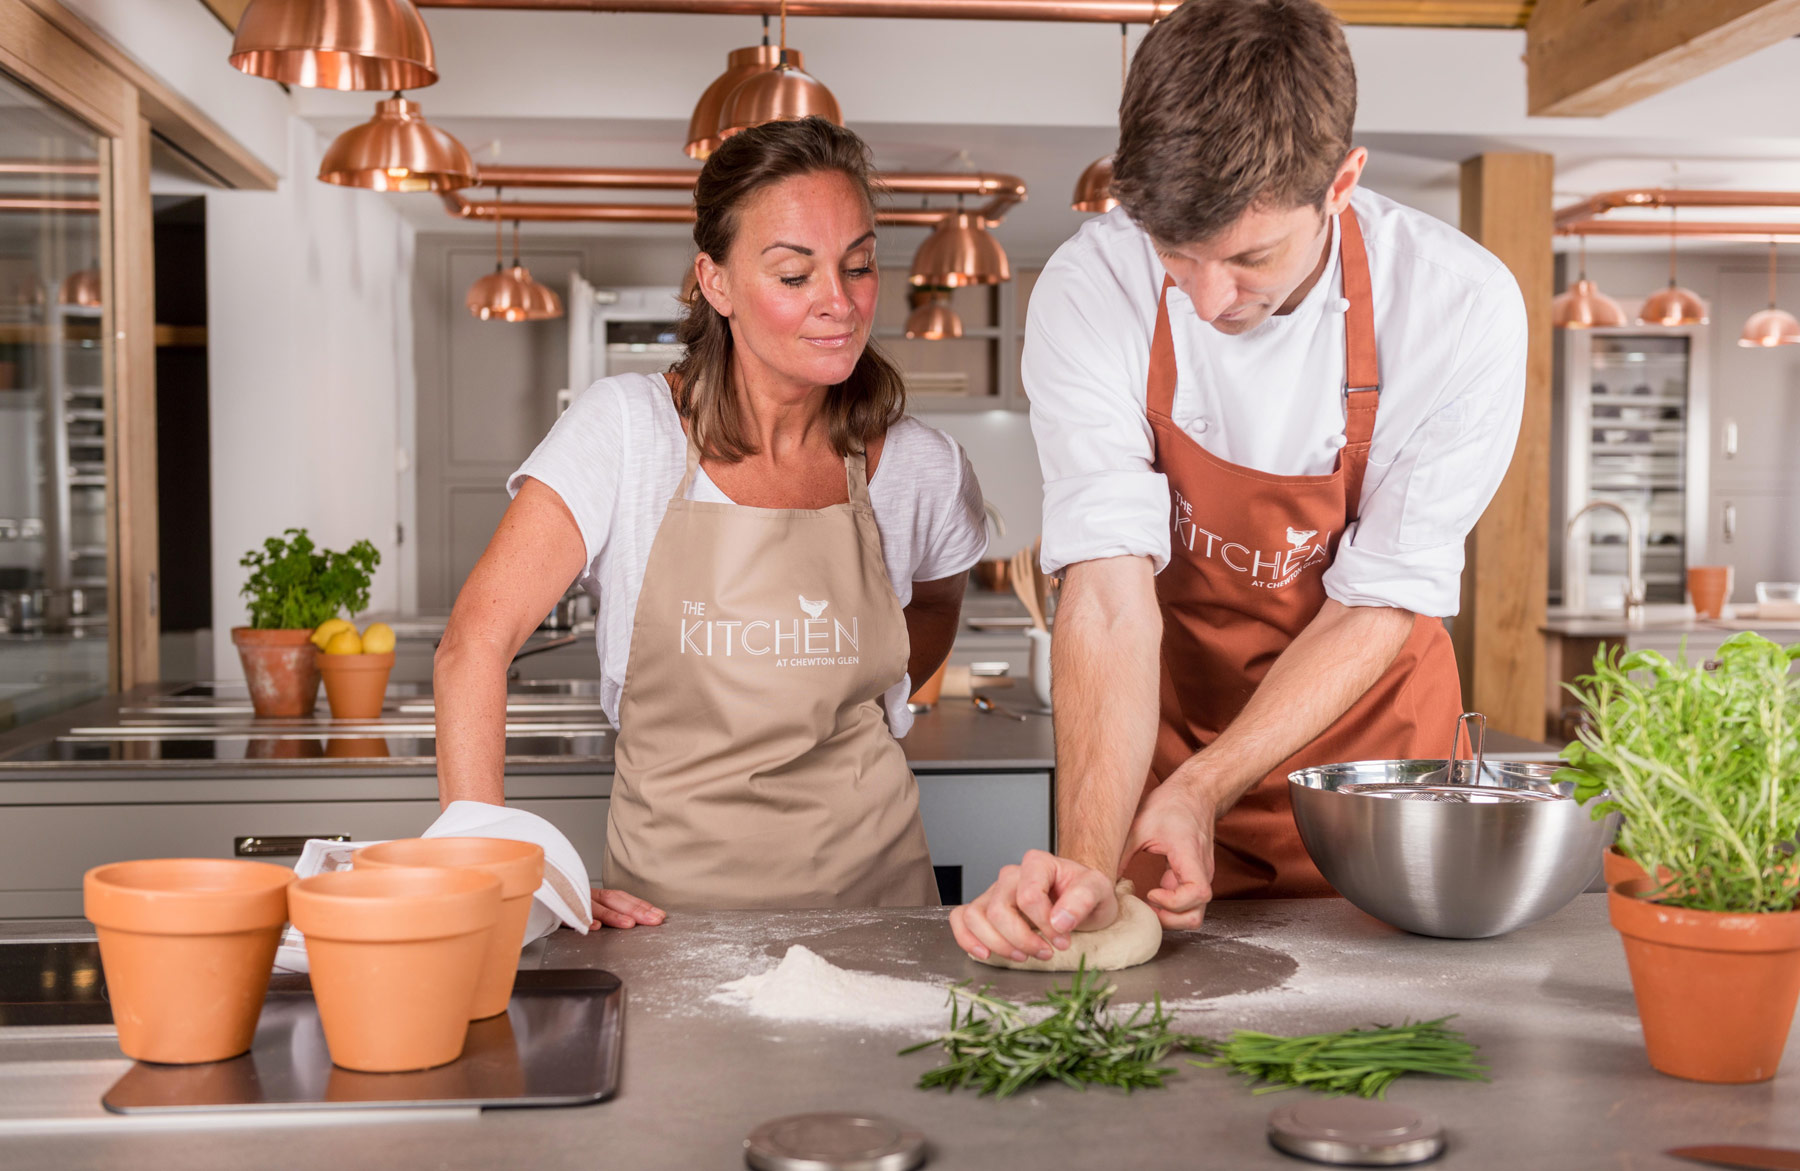 Introducing The Kitchen, Chewton Glen's New Cookery School & Dining Complex